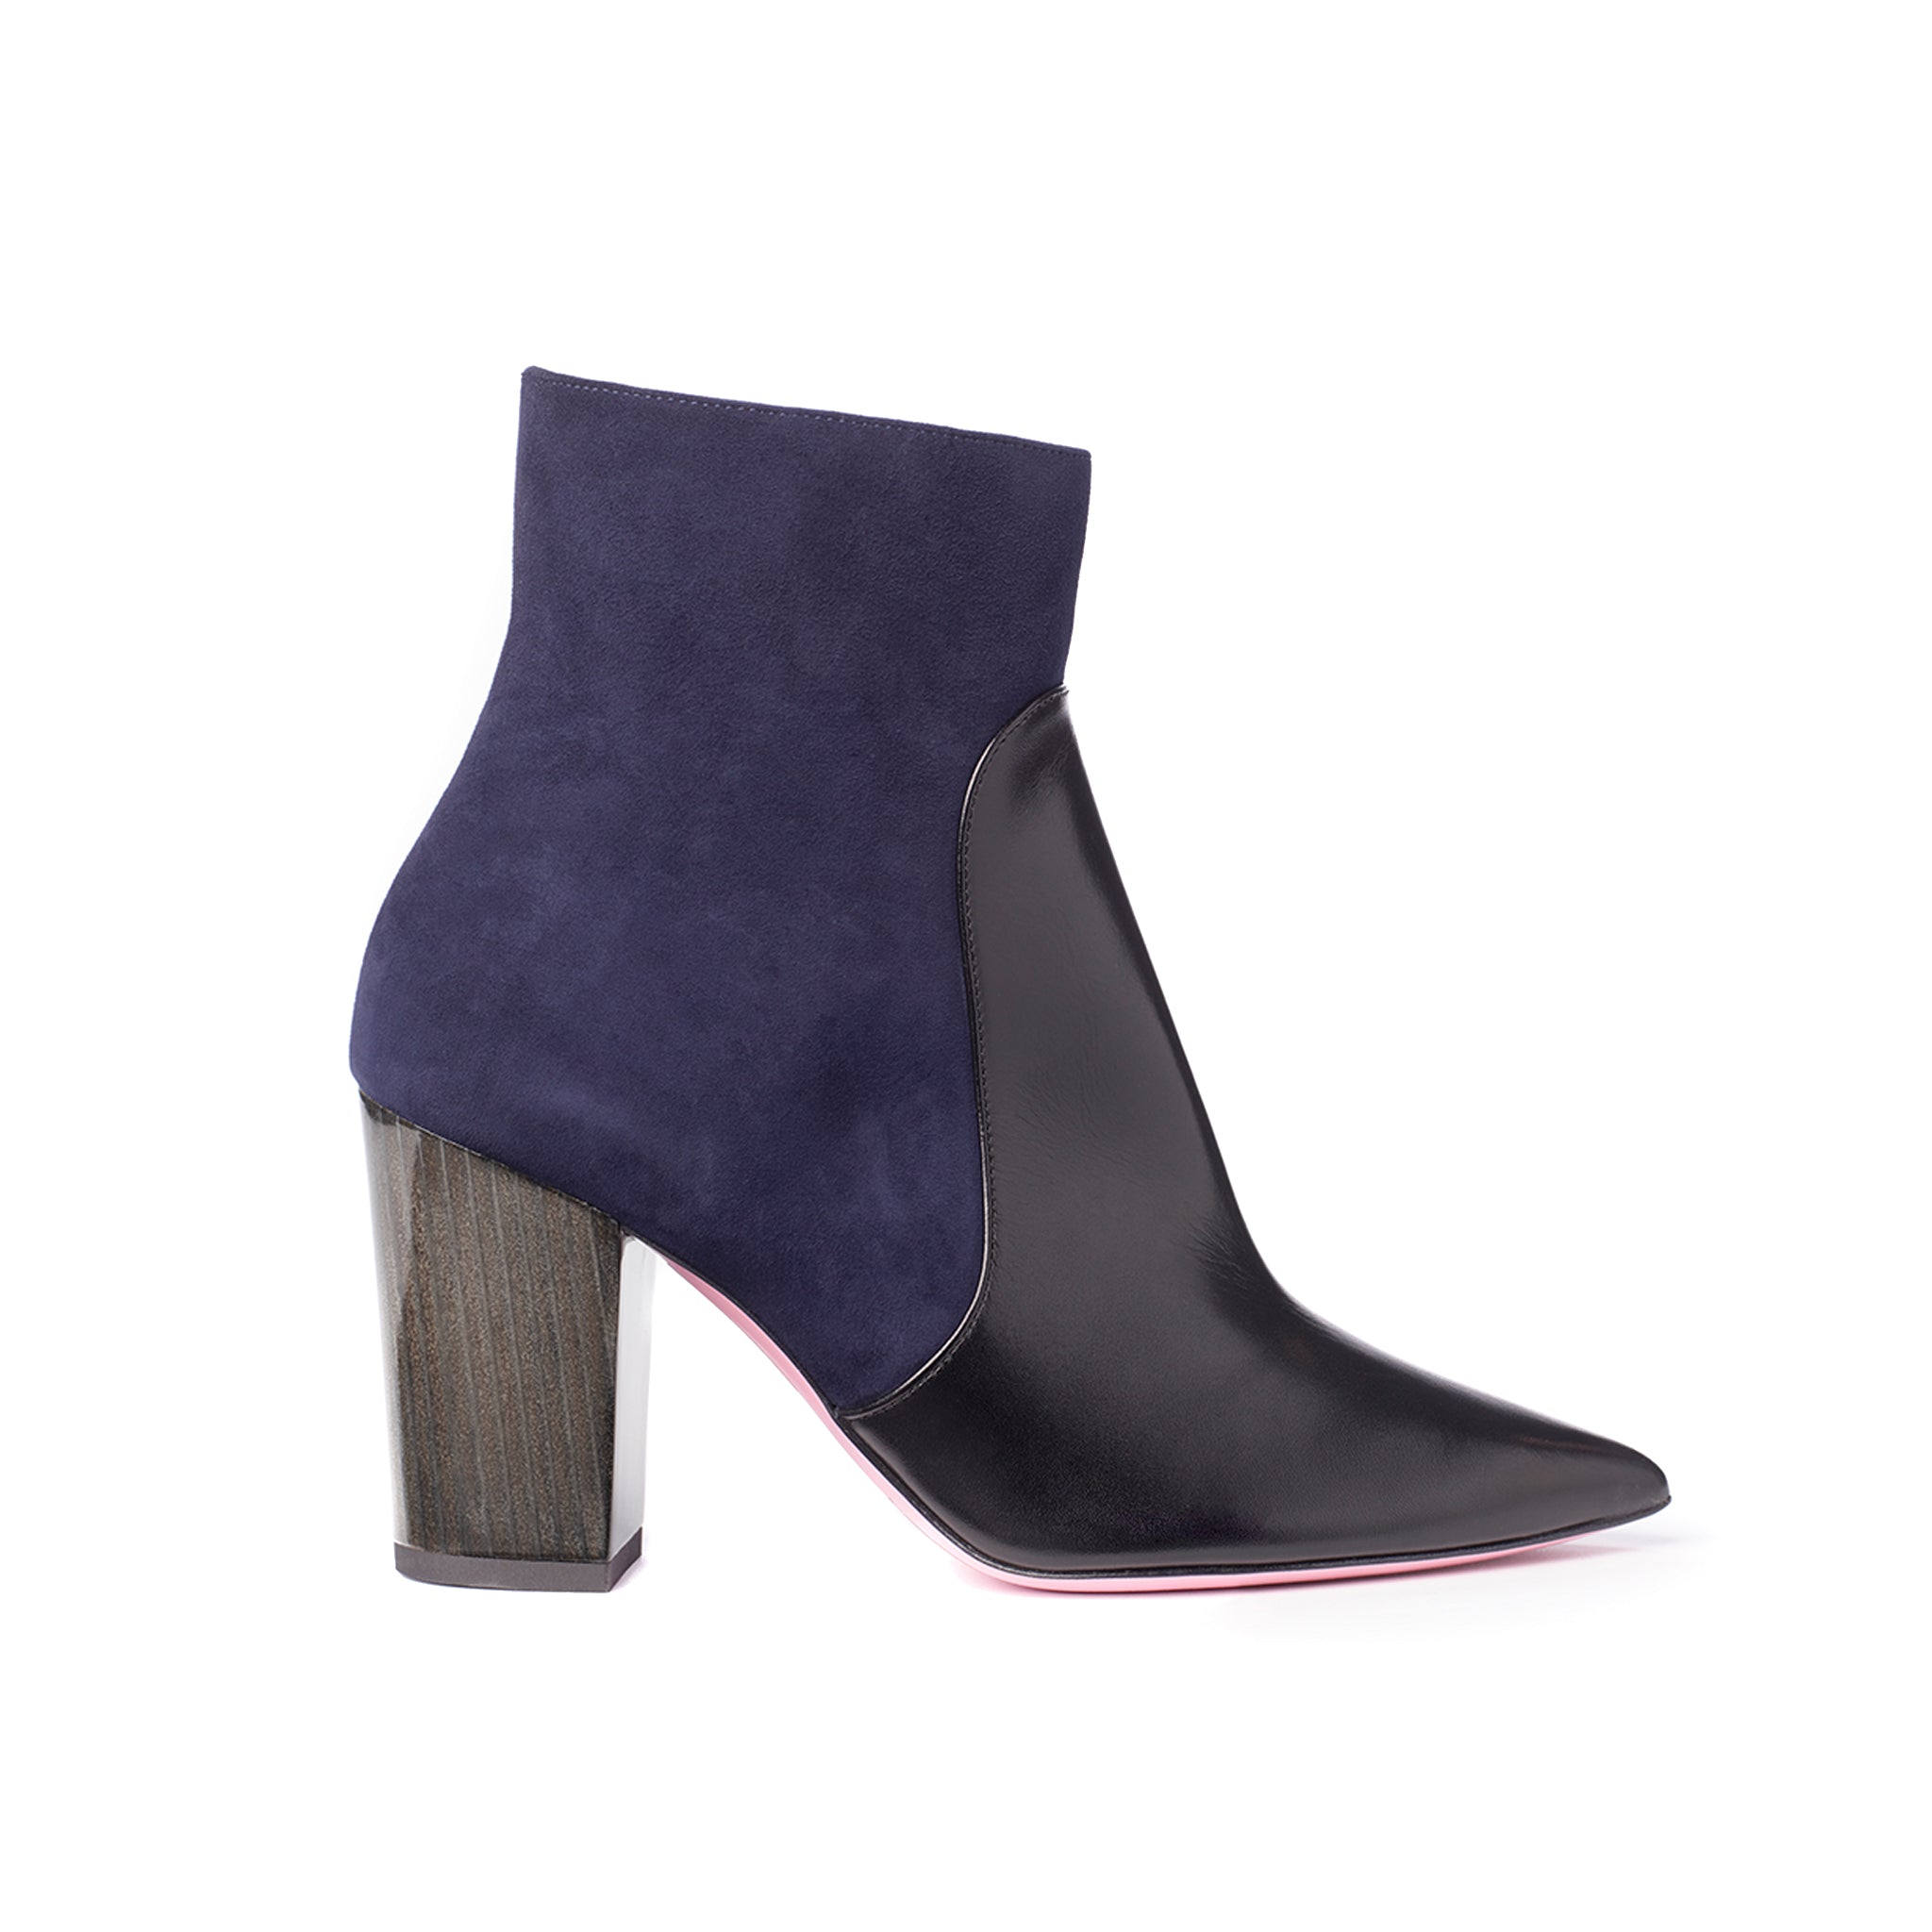 Phare Pointed block heel boot in navy suede and black leather made in Italy